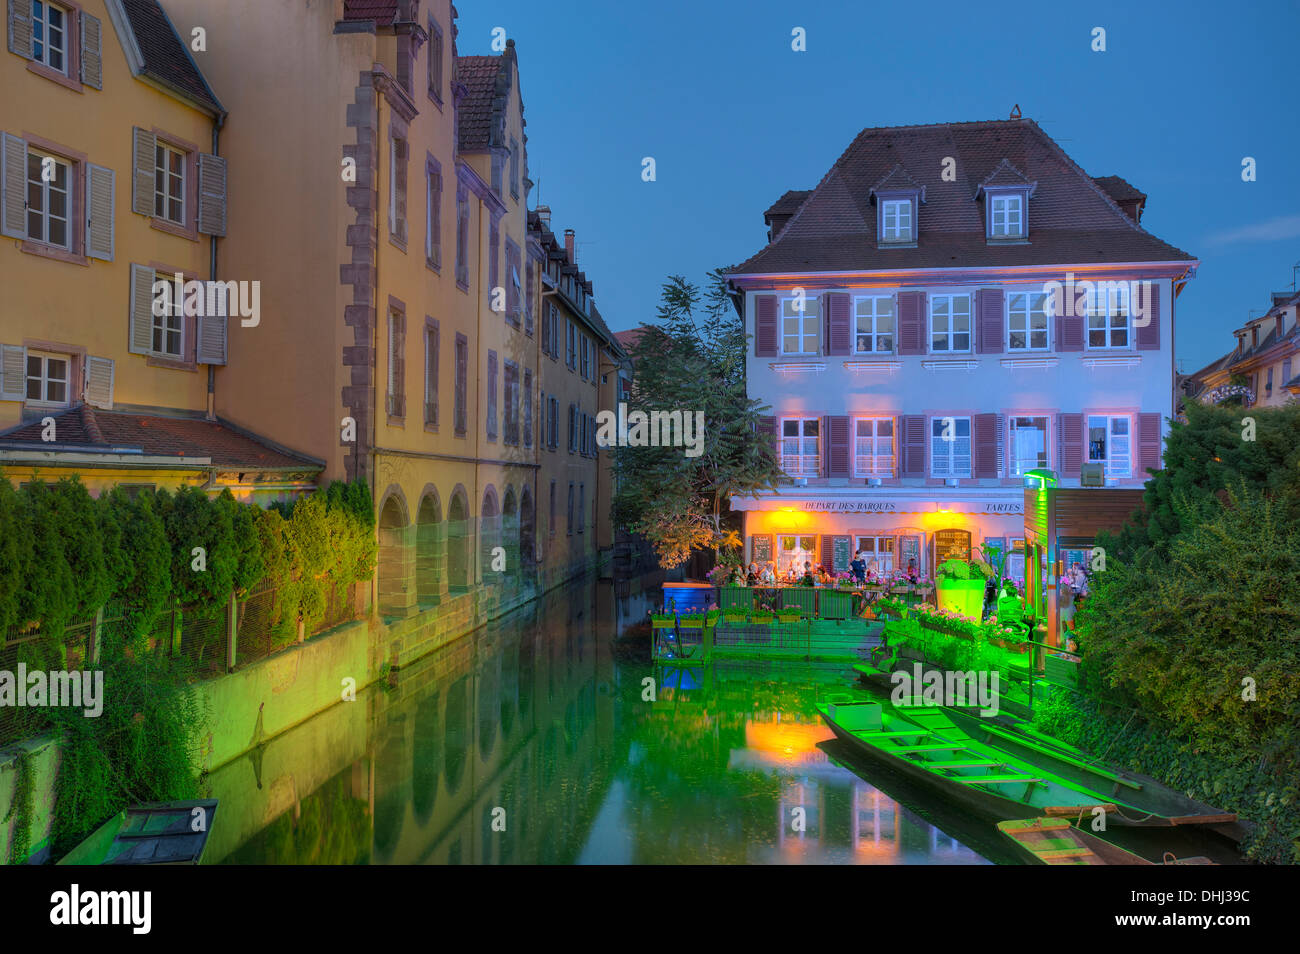 Museum of natural sciences at the Lauch river in the evening, Little Venice, Colmar, Alsace, France, Europe - Stock Image